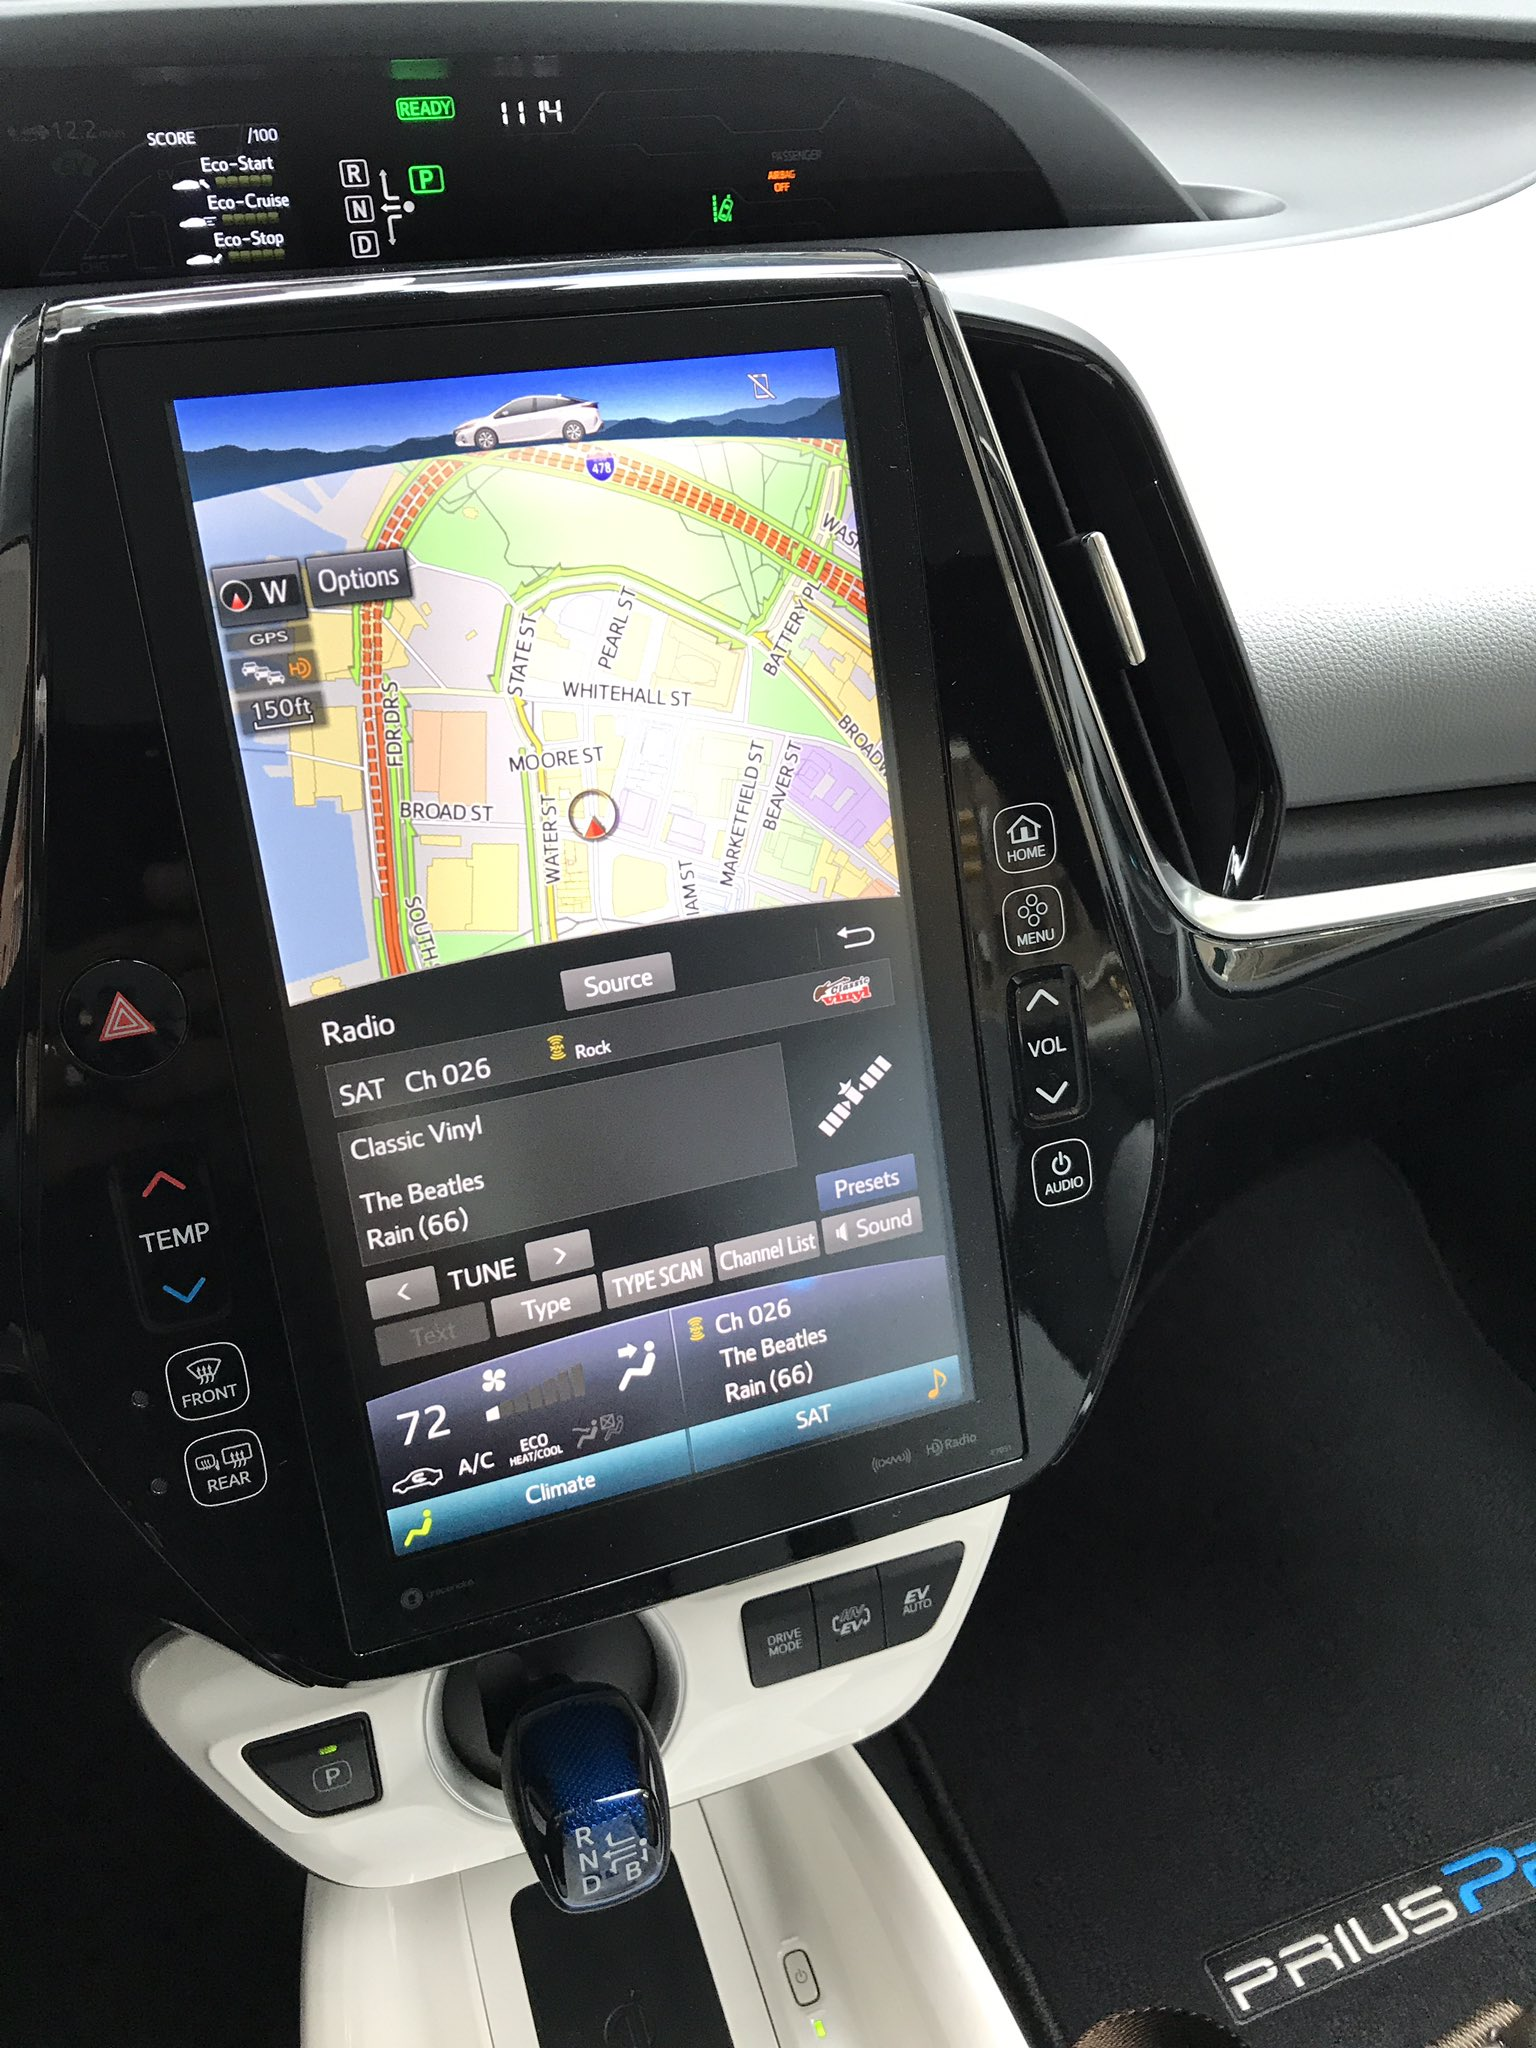 I don't mean to alarm you but this resistive touchscreen UI is in a brand new Prius Prime https://t.co/e2IO7bnBZe